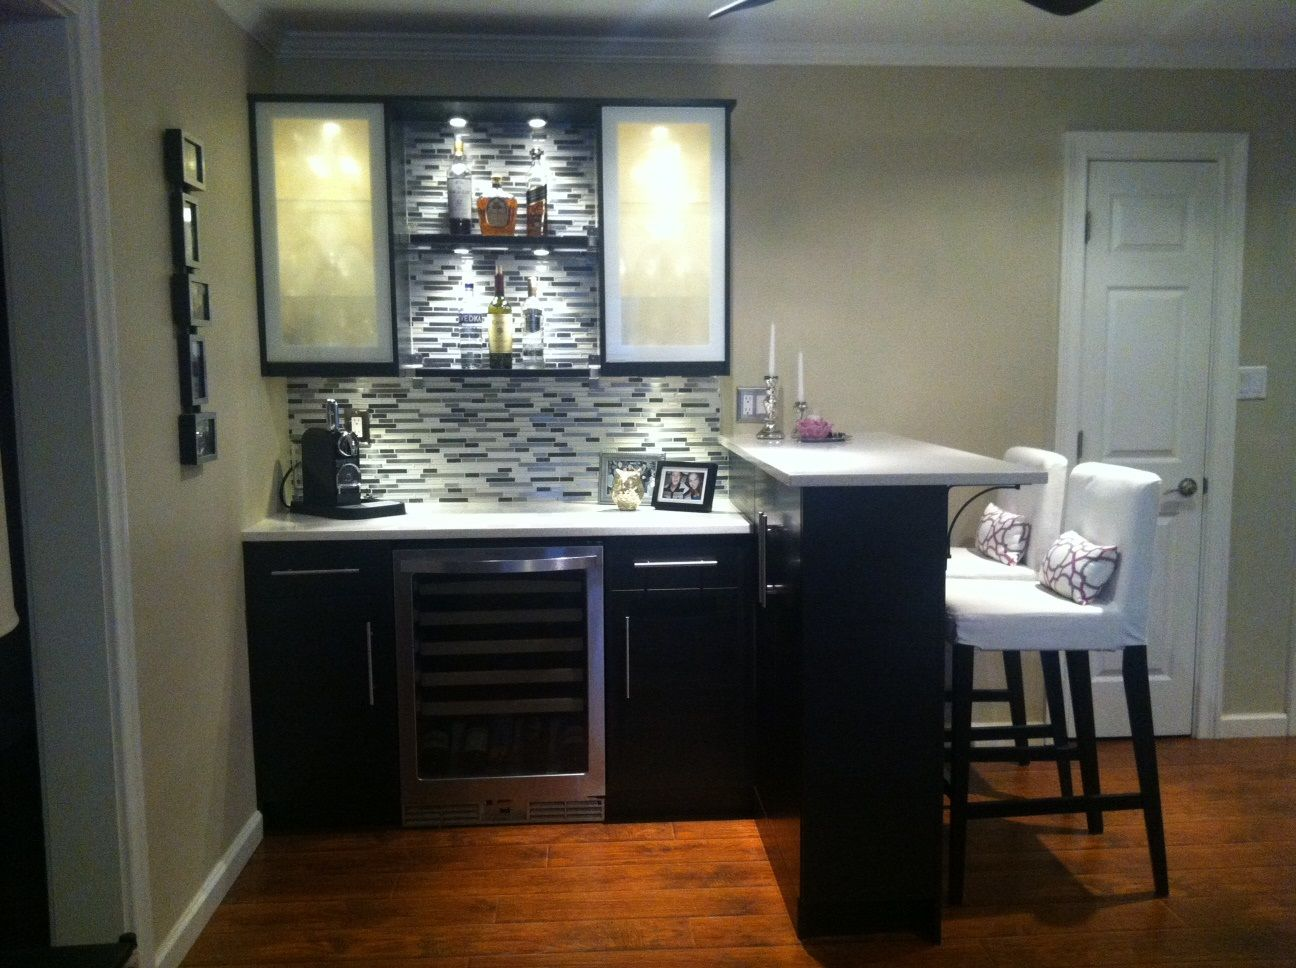 Paul Wine Bar Lowe 39 S Back Splash Home Depot Granite Counter Ikea Cabinets And Bar Stools